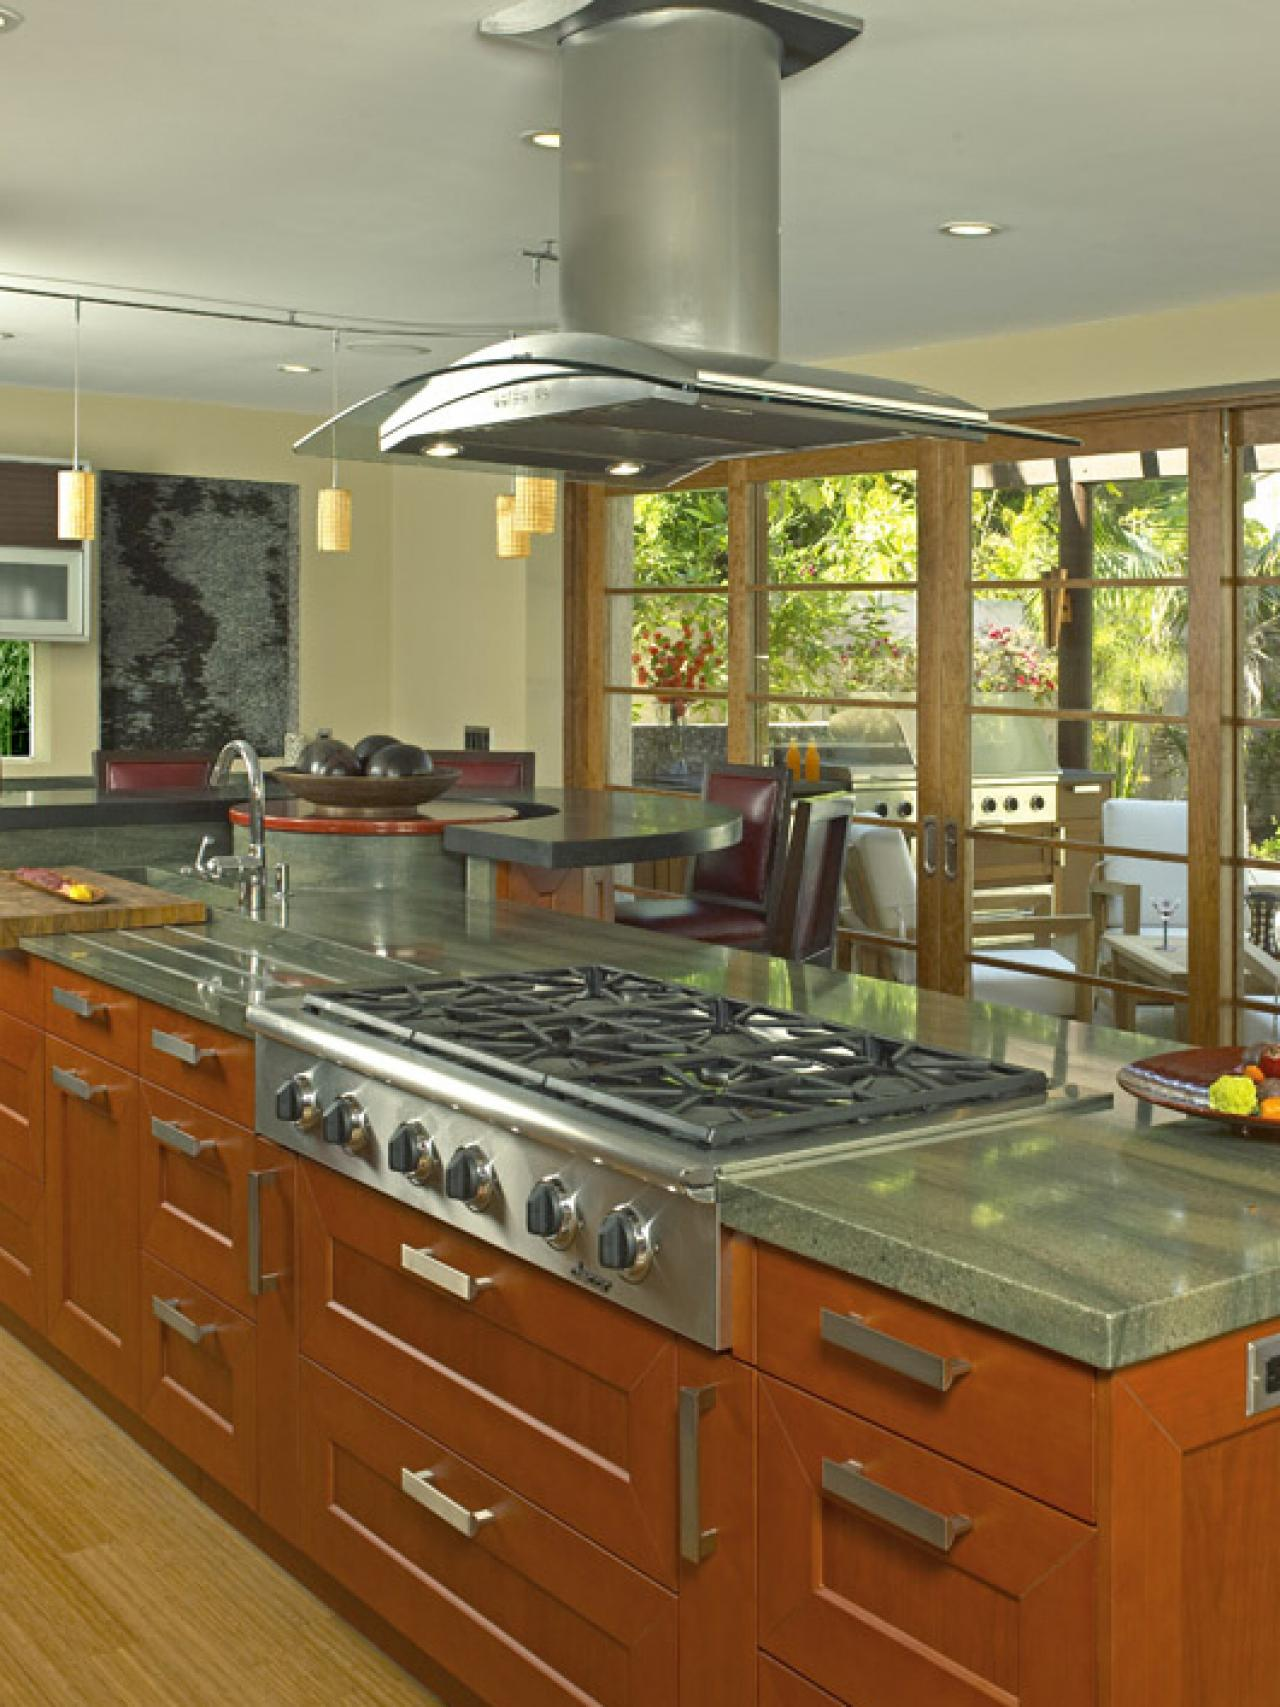 25 Best Kitchen Design Ideas To Get Inspired Decoration Love